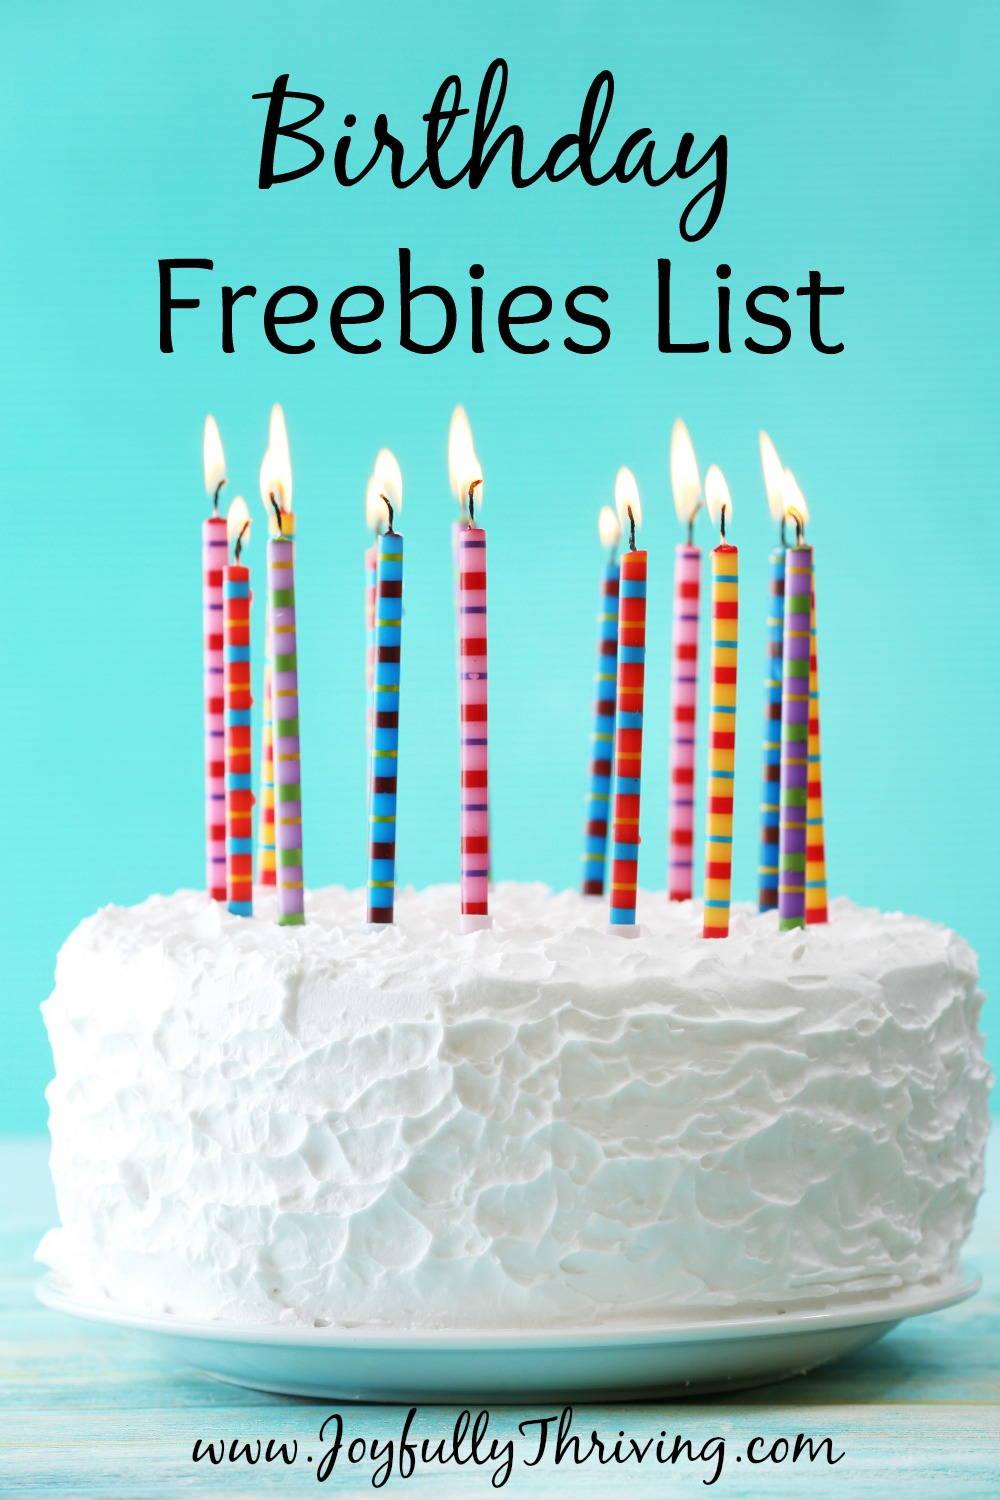 places to sign up for your birthday ; Birthday-Freebies-List-There-are-over-2-dozen-restaurants-where-you-can-eat-for-free-on-or-around-your-birthday